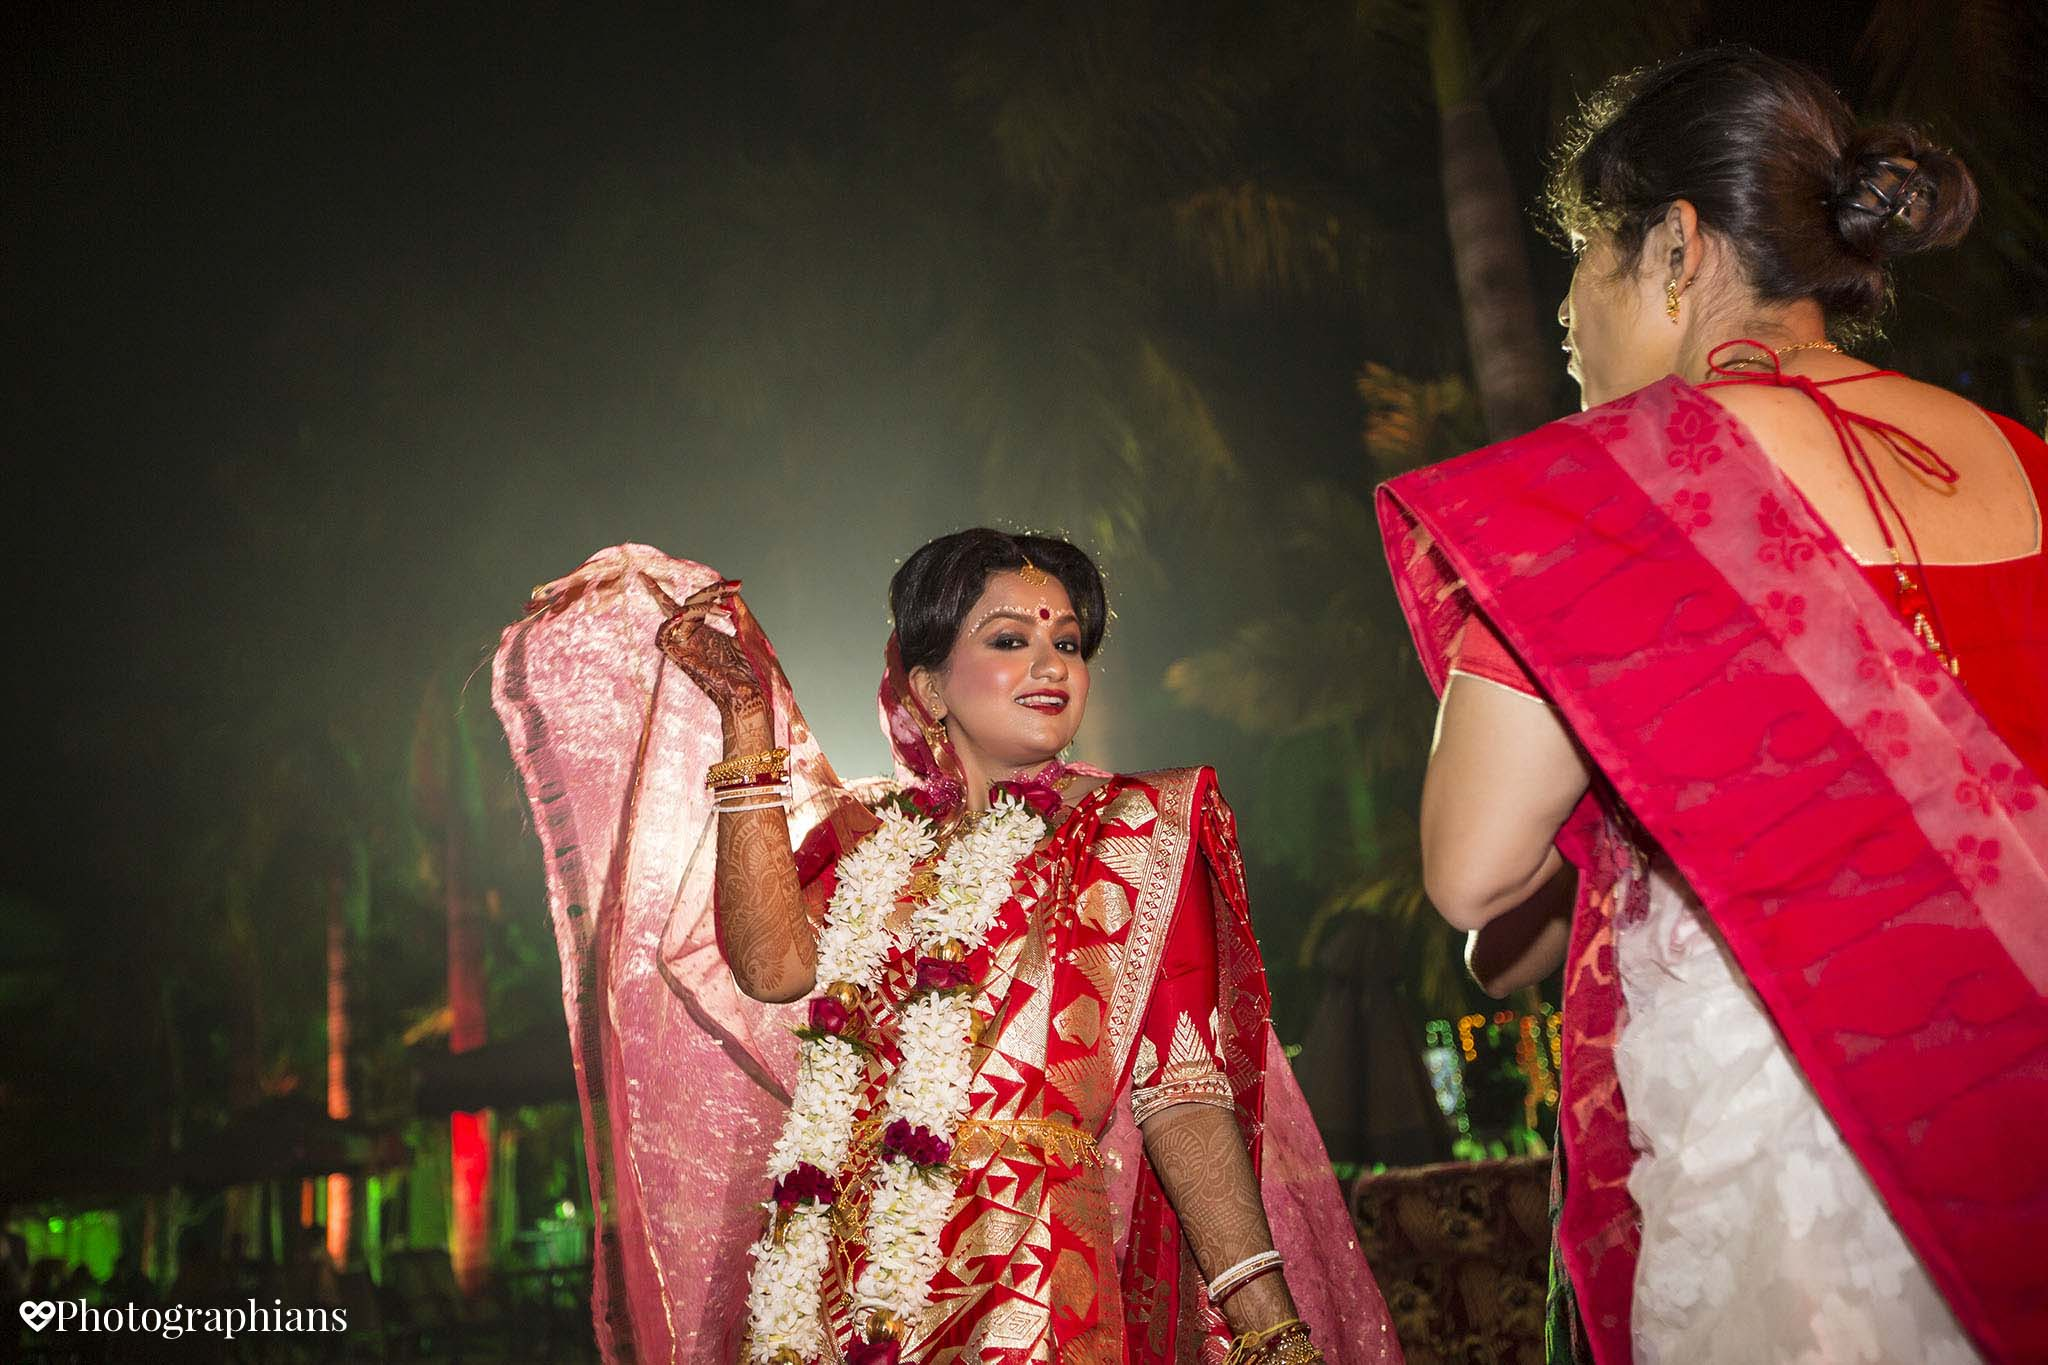 Photographians_Indian_Destination_Wedding_221